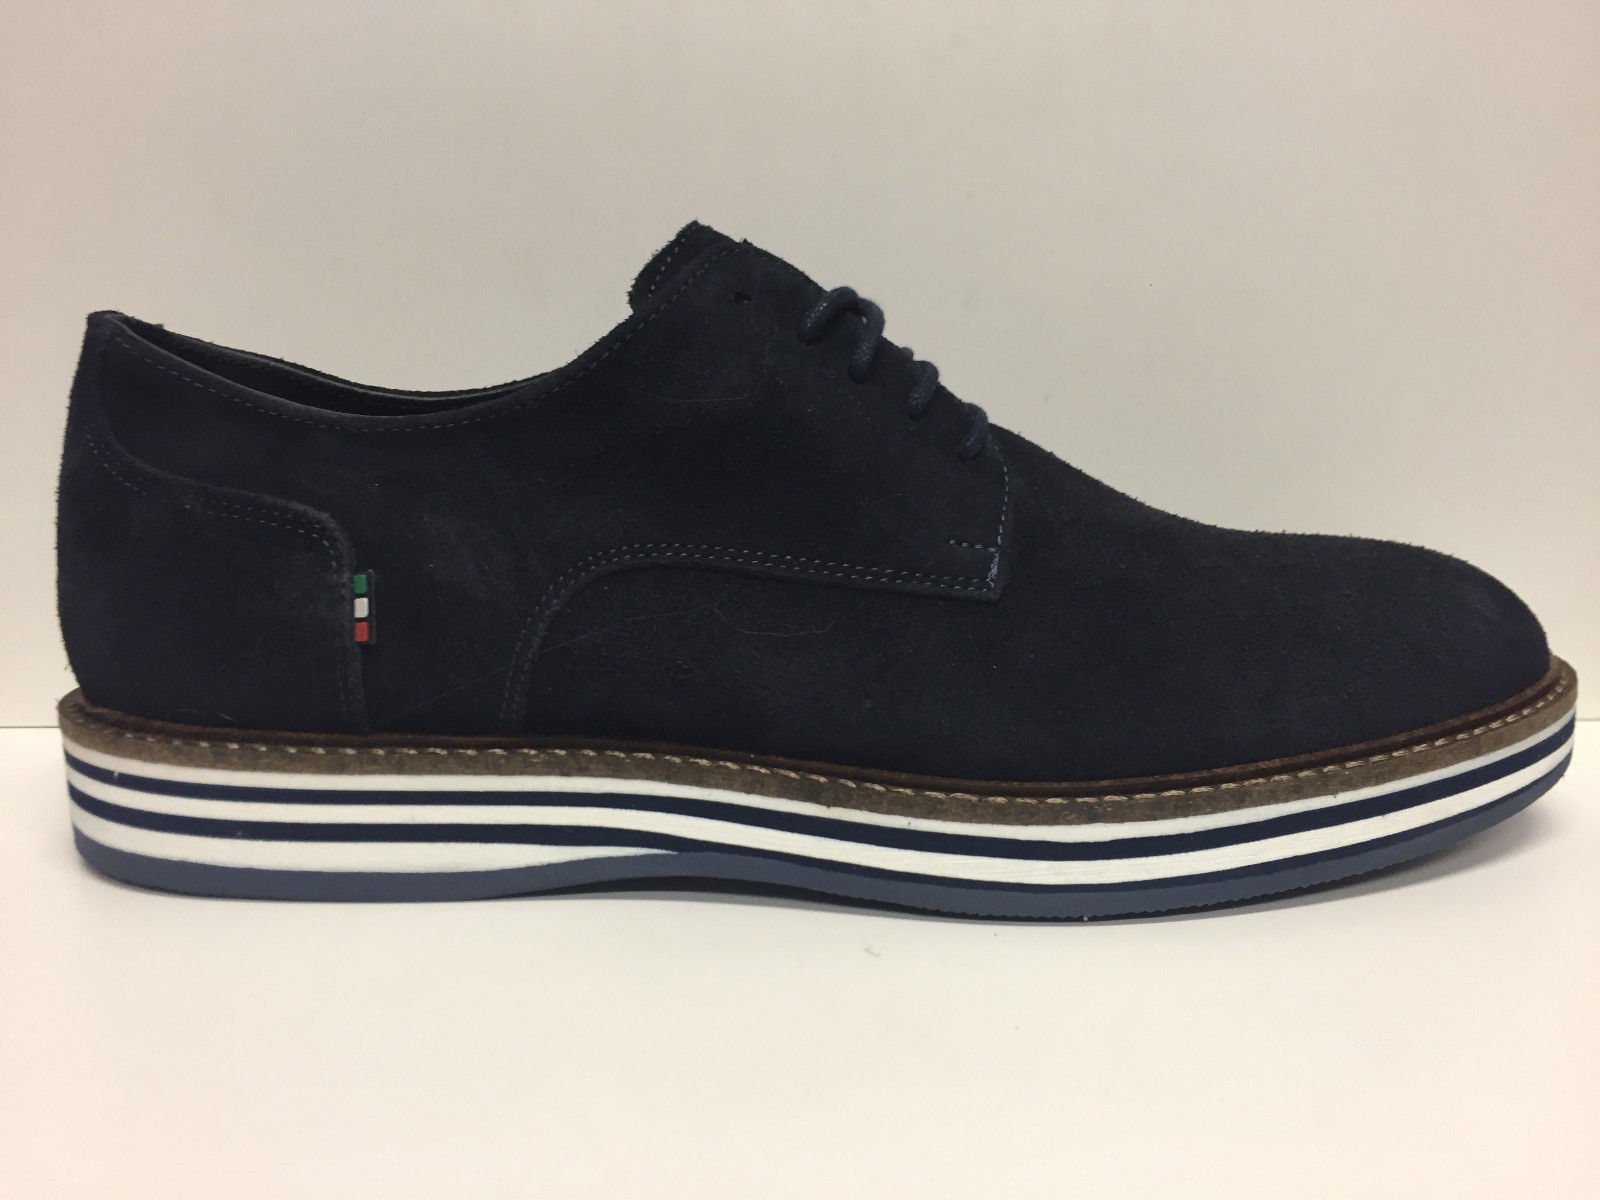 SCARPE INGLESINA UOMO AJ ARMANI JEANS ORIGINALI 0310 PELLE SHOES LEATHER MAN P/E